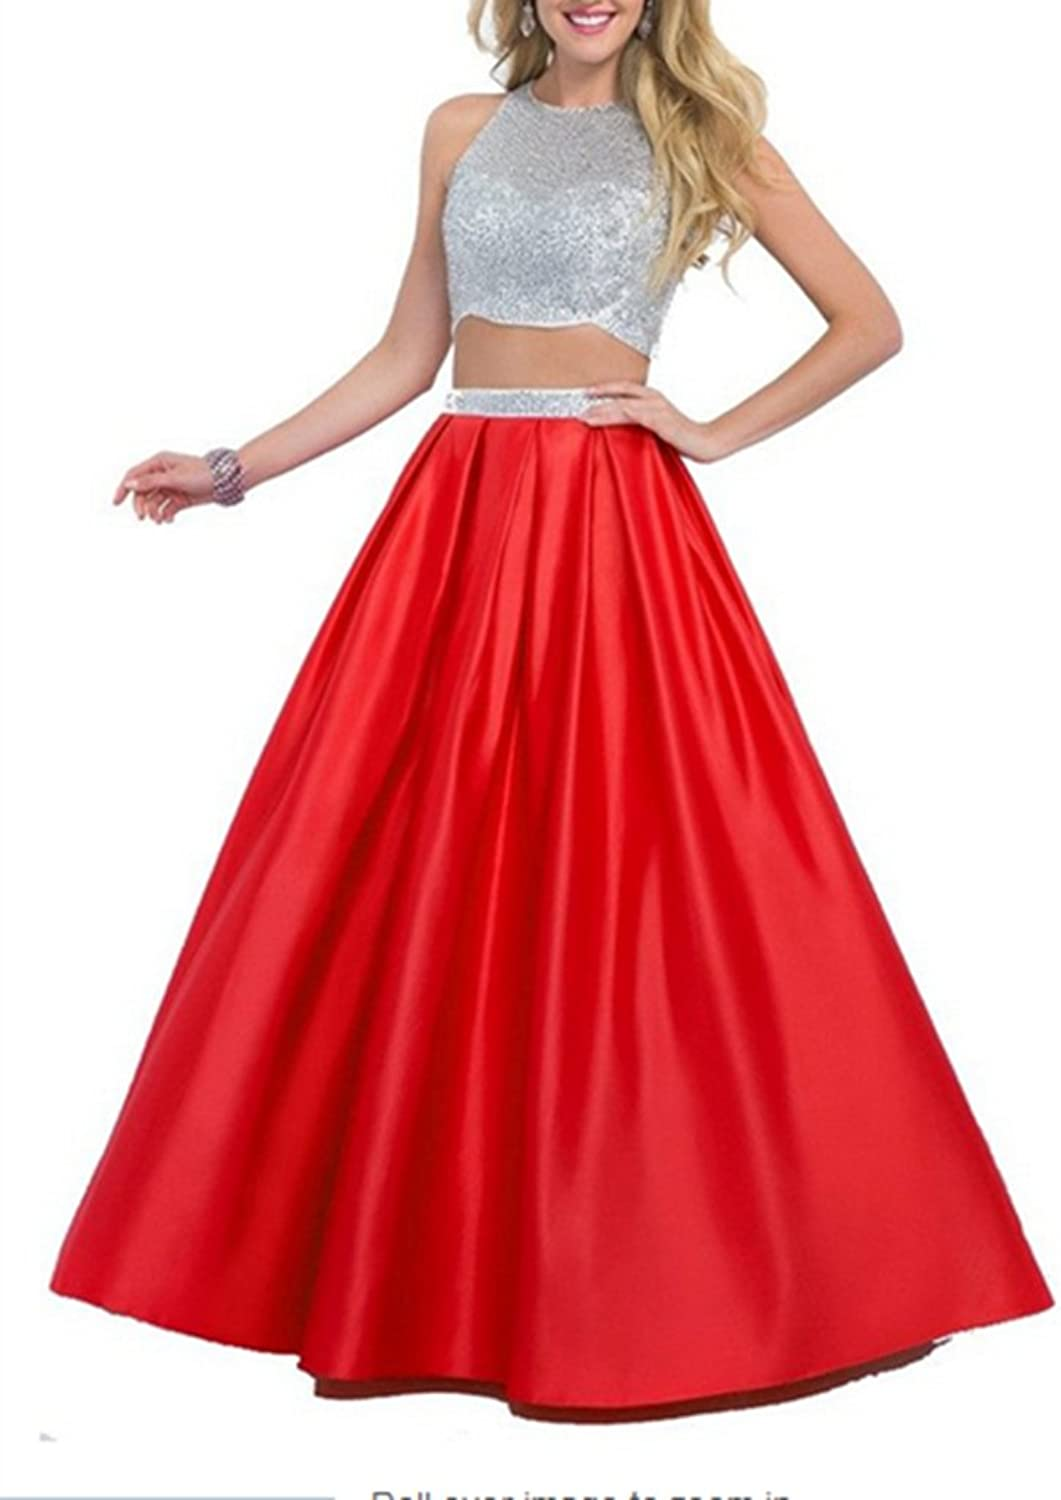 Emmani Women's Long Two Pieces Beads Special Formal Prom Dresses